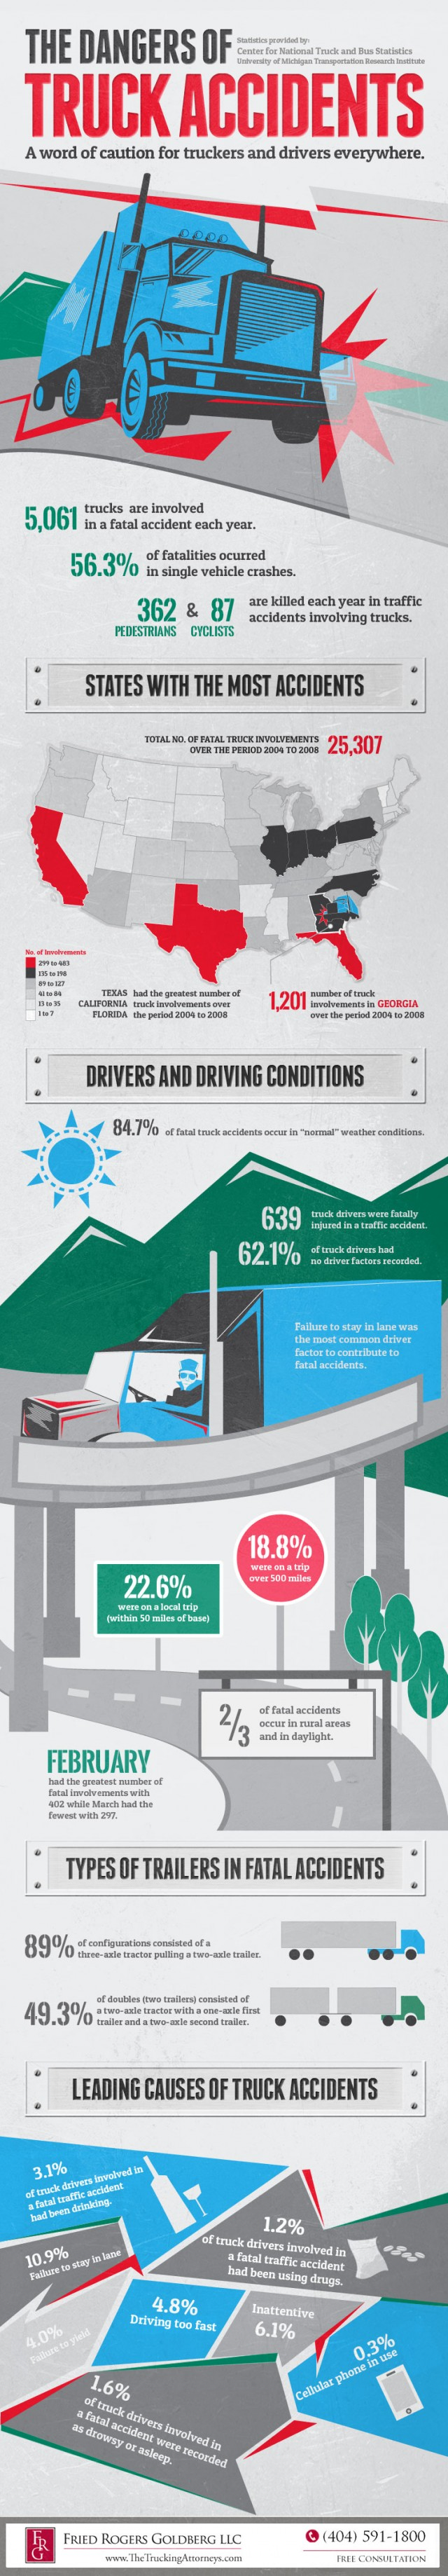 The-Dangers-Of-Truck-Accidents-infographic